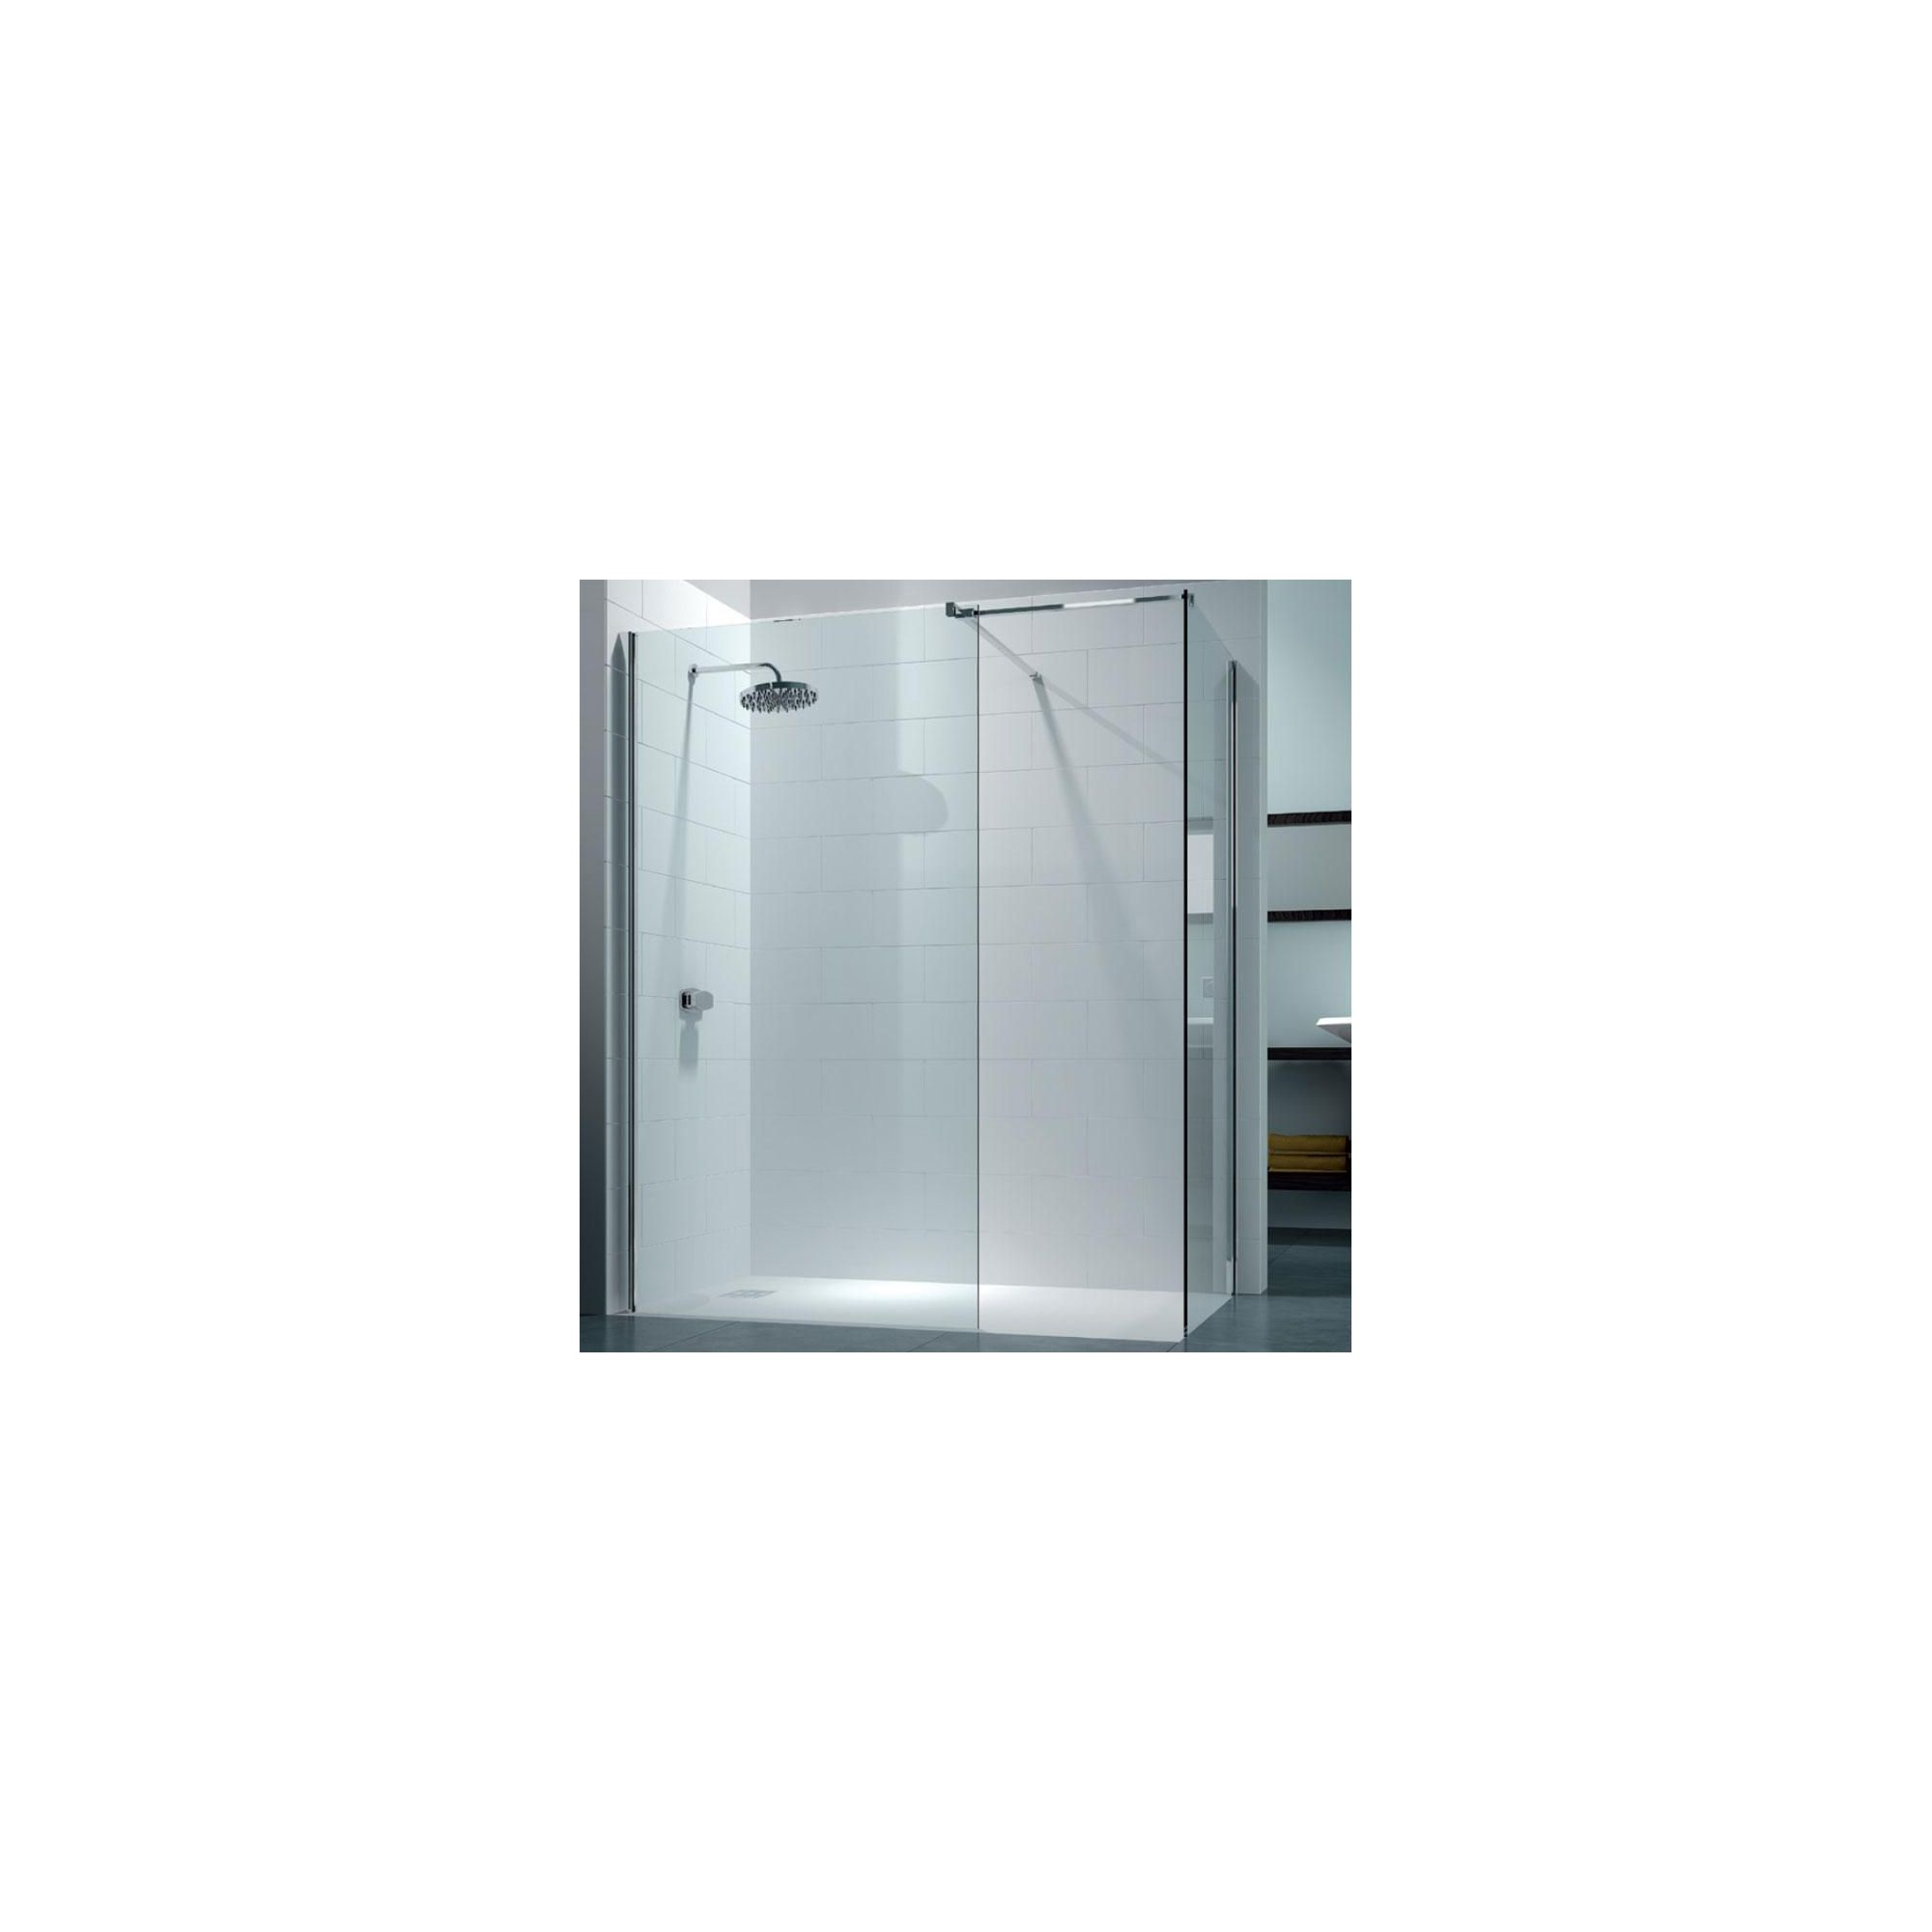 Merlyn Series 8 Walk-In Shower Enclosure, 1700mm x 800mm, 8mm Glass, excluding Tray at Tesco Direct